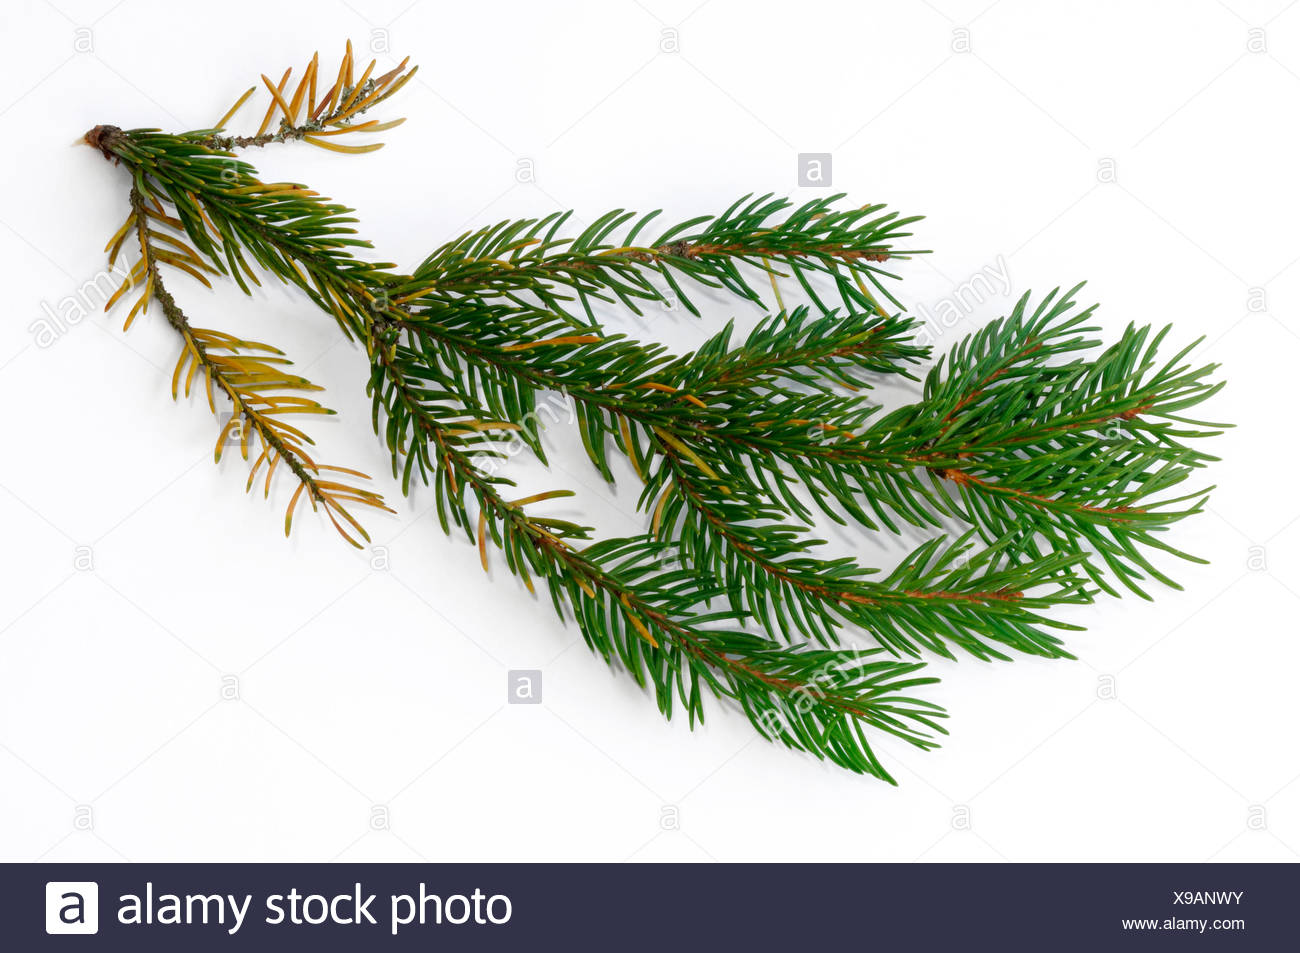 Norway Spruce, Common Spruce (Picea abies), damaged twig with fallen off needles and discoloration of needles. Studio picture against a white background. Germany - Stock Image